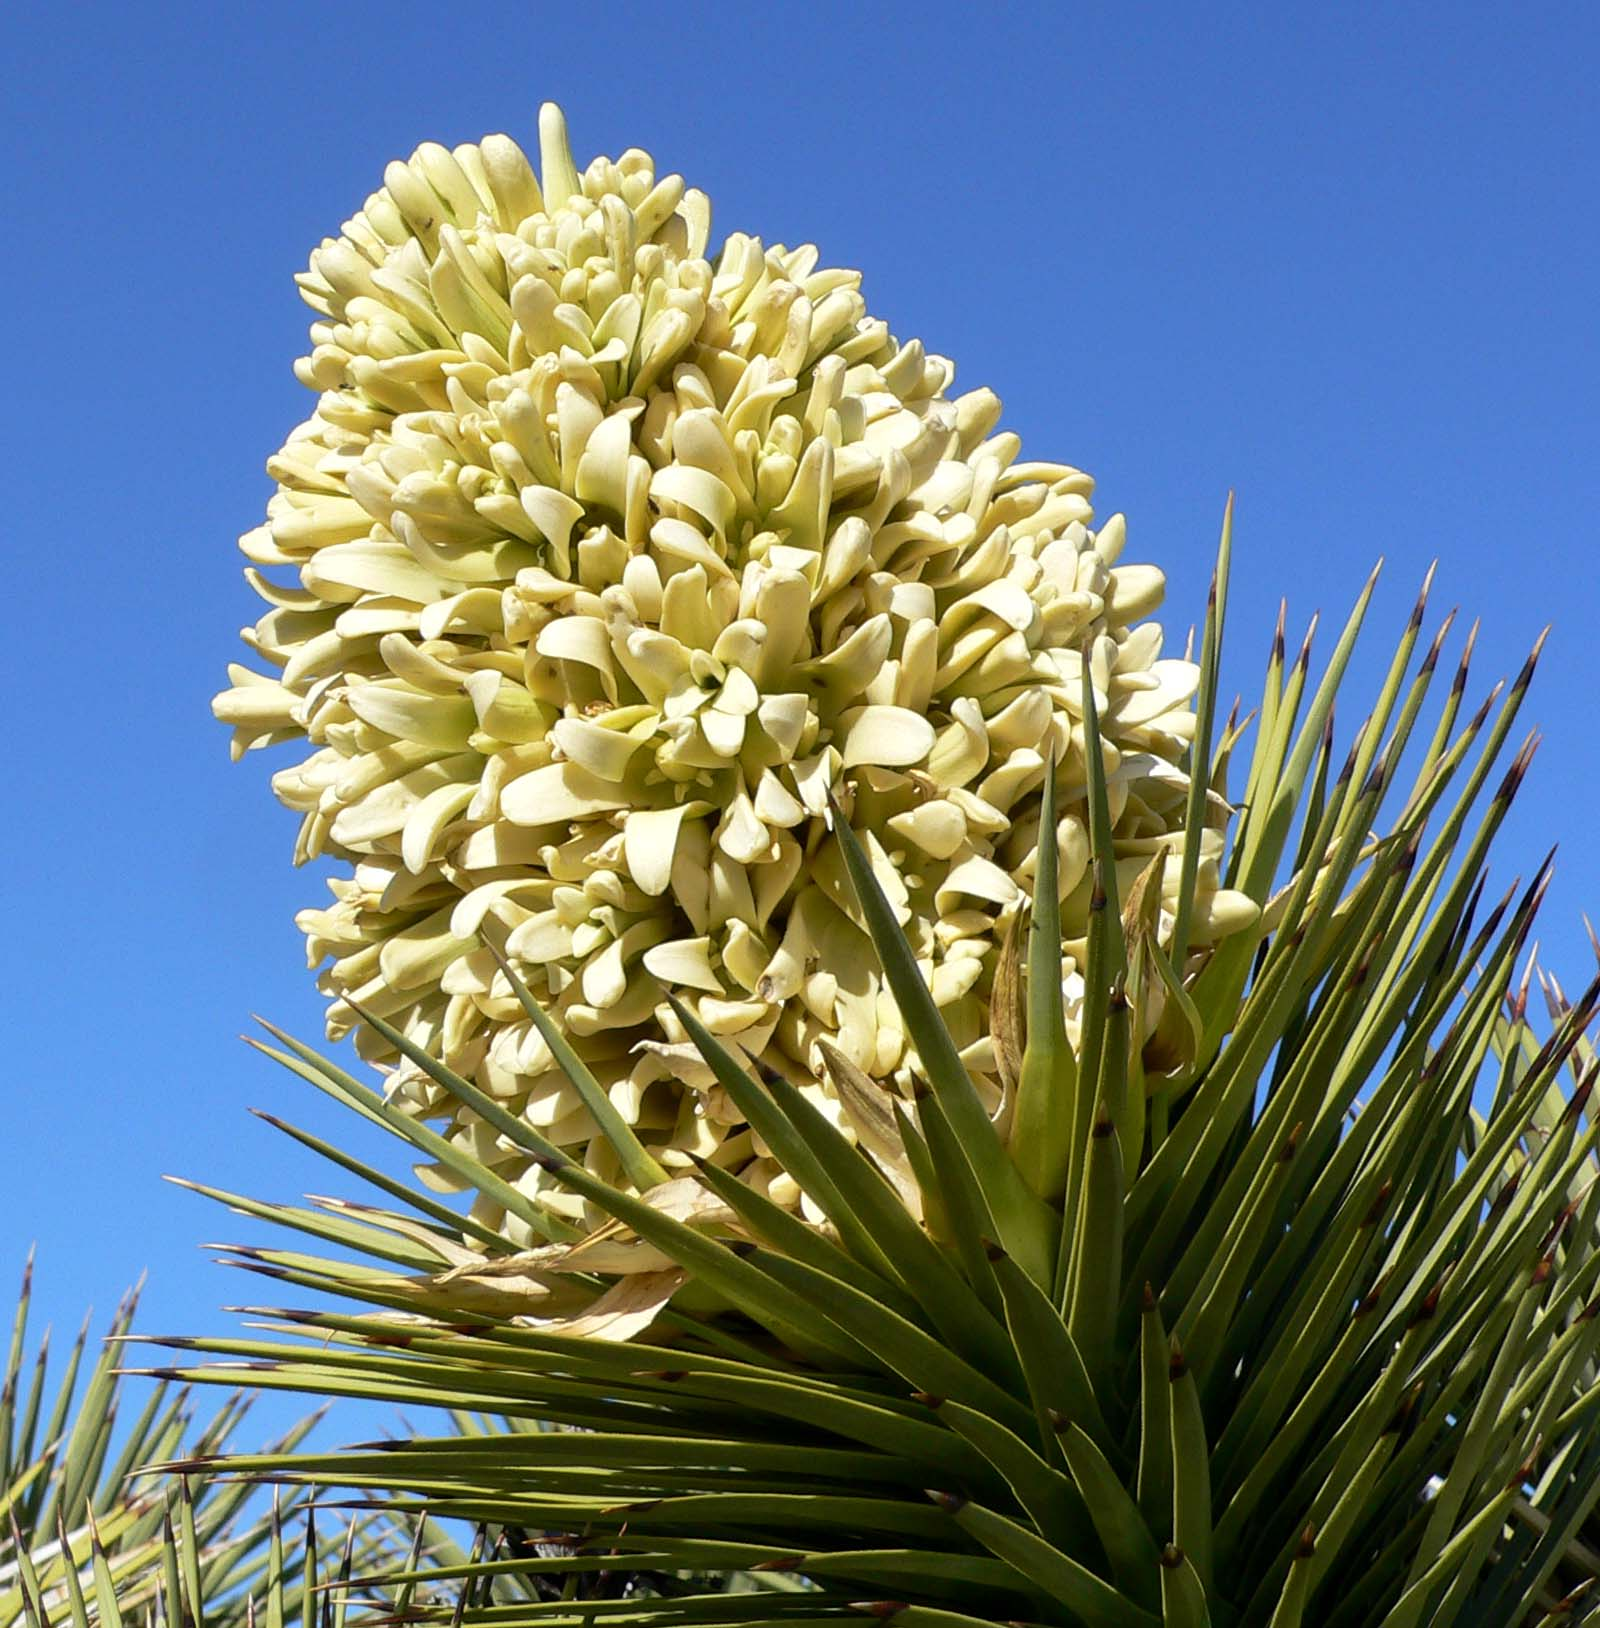 A close-up photograph of a Yucca brevifolia (Joshua Tree) bloom.